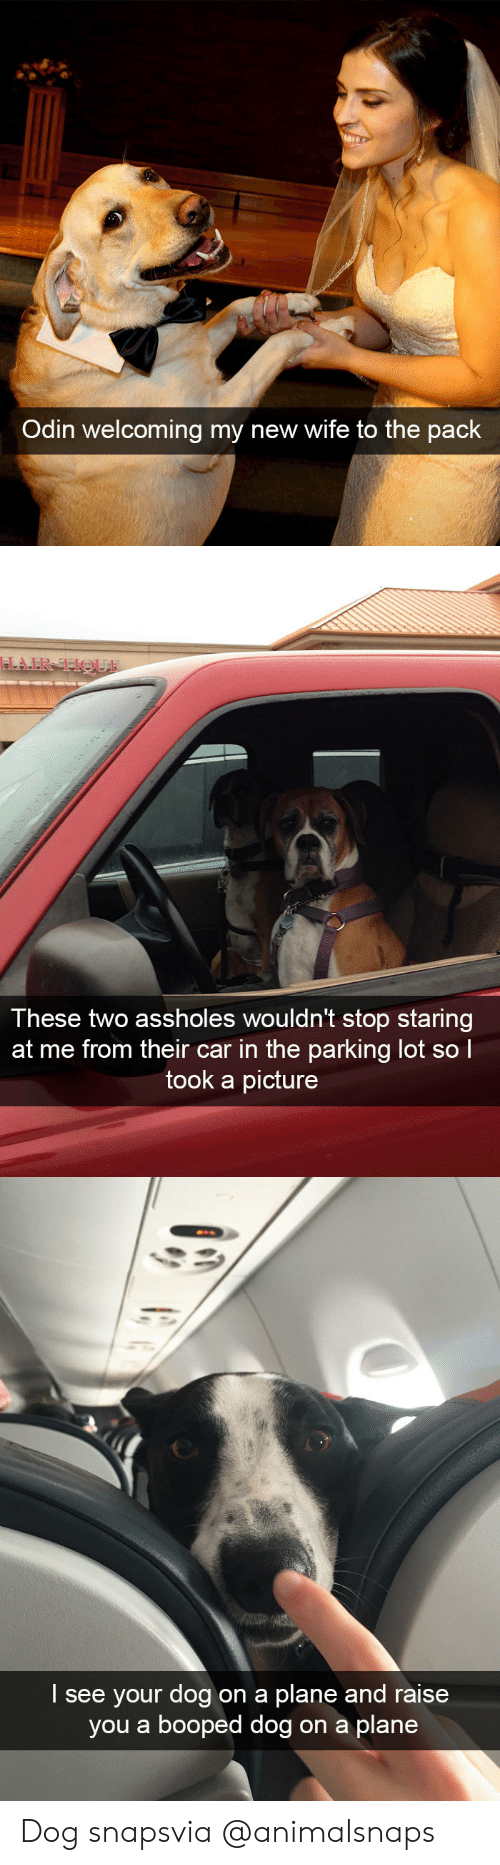 Target, Tumblr, and Http: Odin welcoming my new wife to the pack   These two assholes wouldn't stop staring  at me from their car in the parking lot sol  took a picture   I see your dog on a plane and raise  you a booped dog on a plane Dog snapsvia @animalsnaps